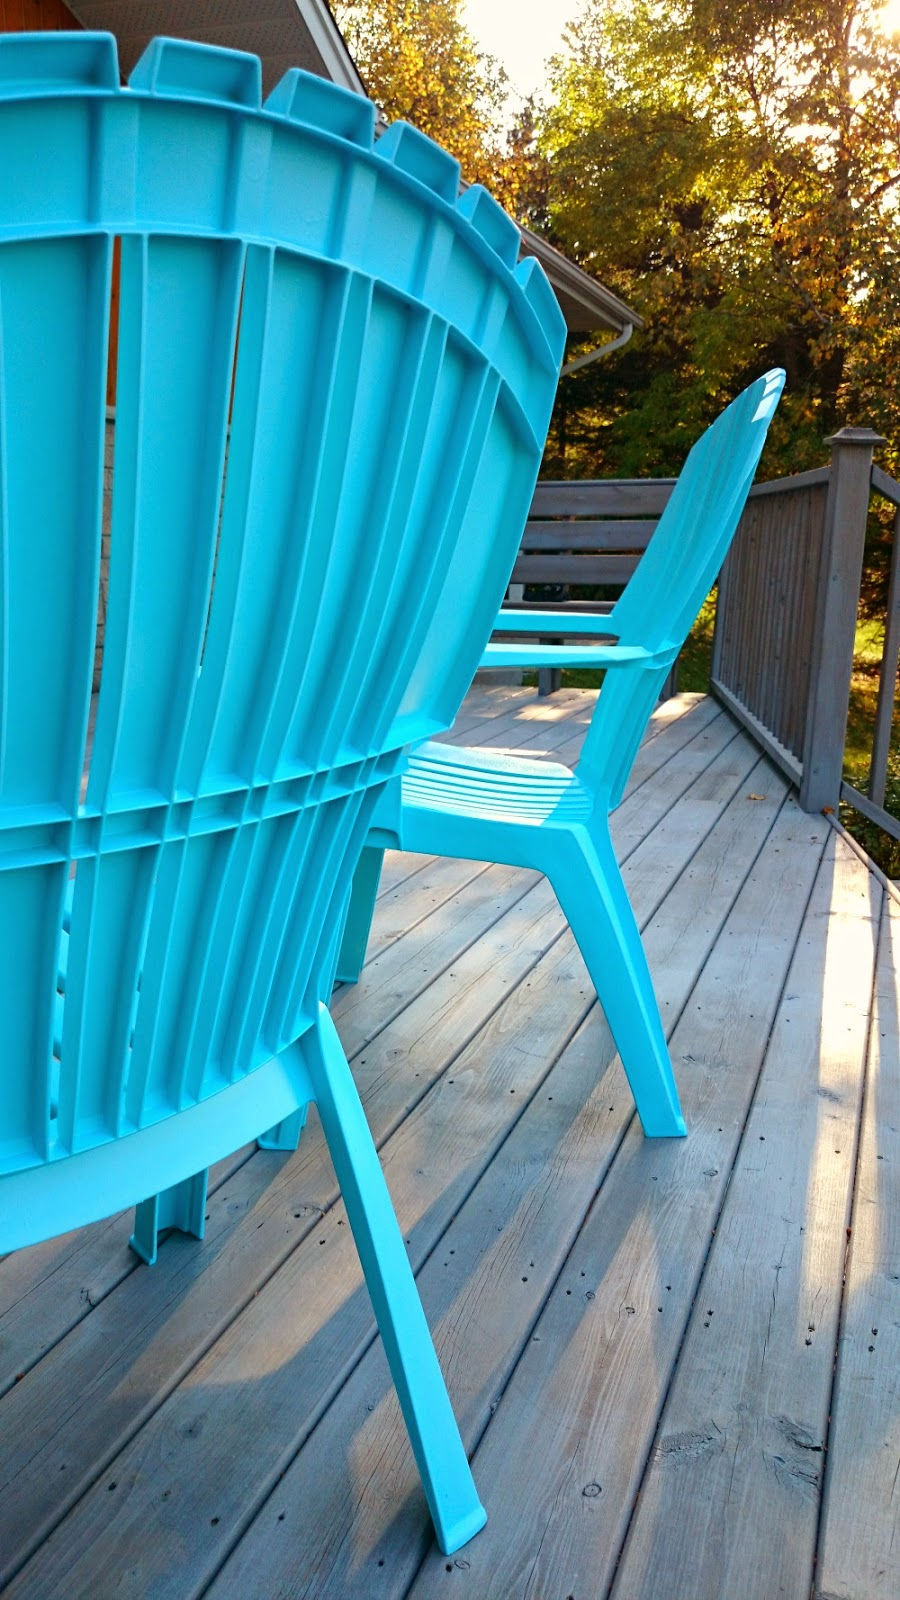 Painting Plastic Chairs how to spray paint plastic lawn chairs | dans le lakehouse